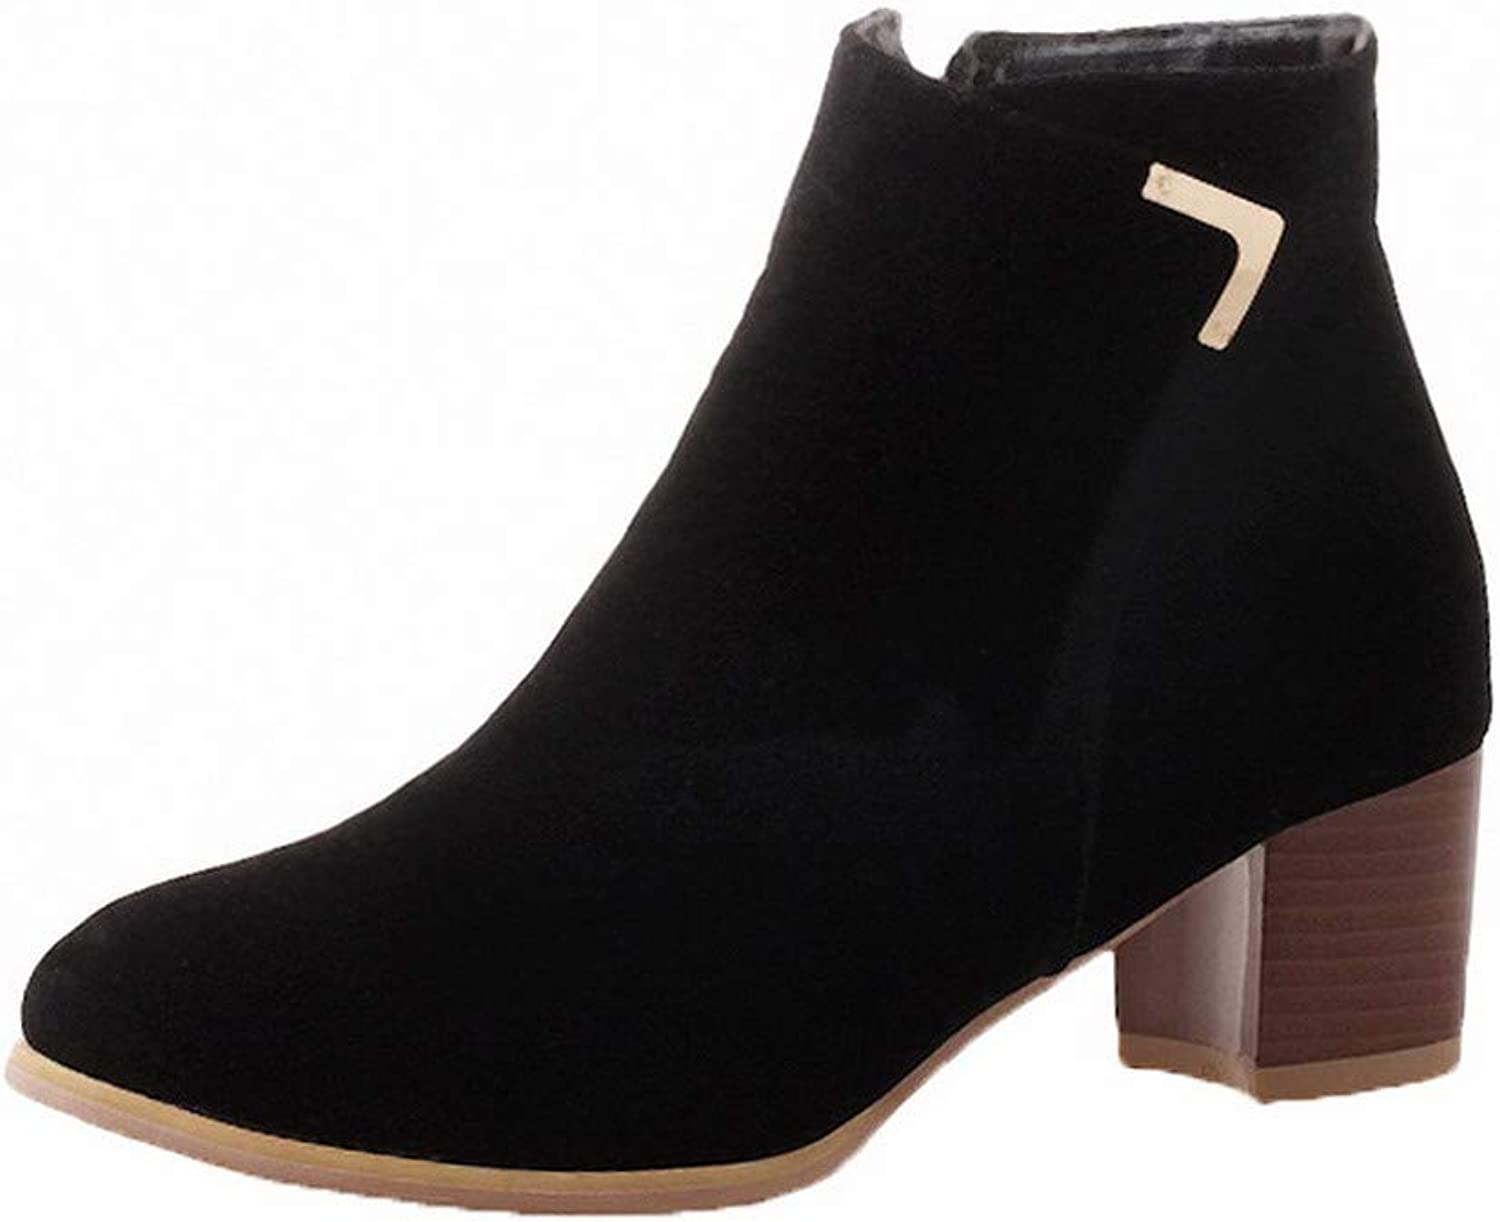 AmoonyFashion Women's Solid Kitten-Heels Round-Toe Imitated Suede Zipper Boots, BUSXT125557